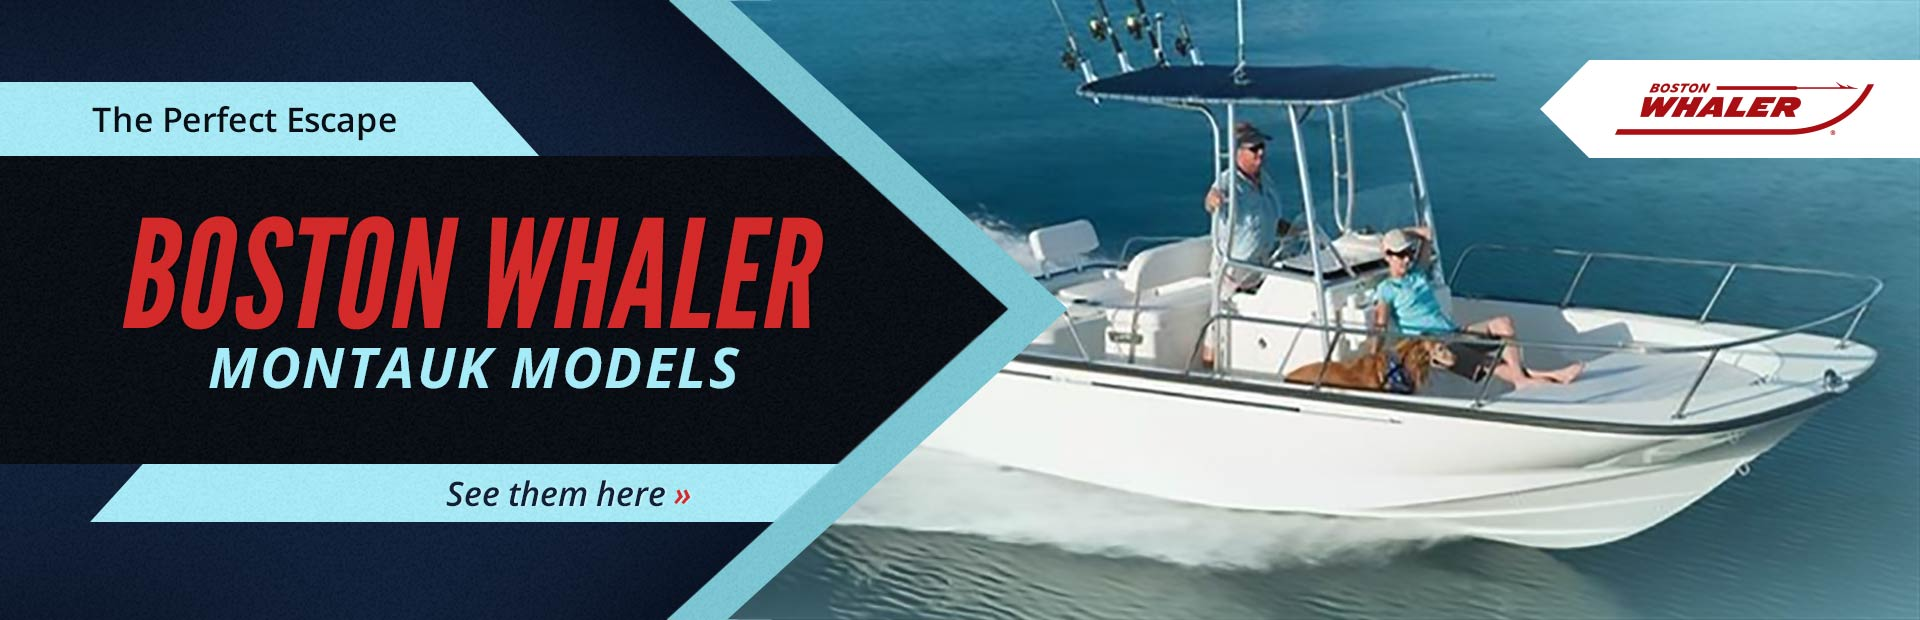 Boston Whaler Montauk Models: Click here to view the lineup.